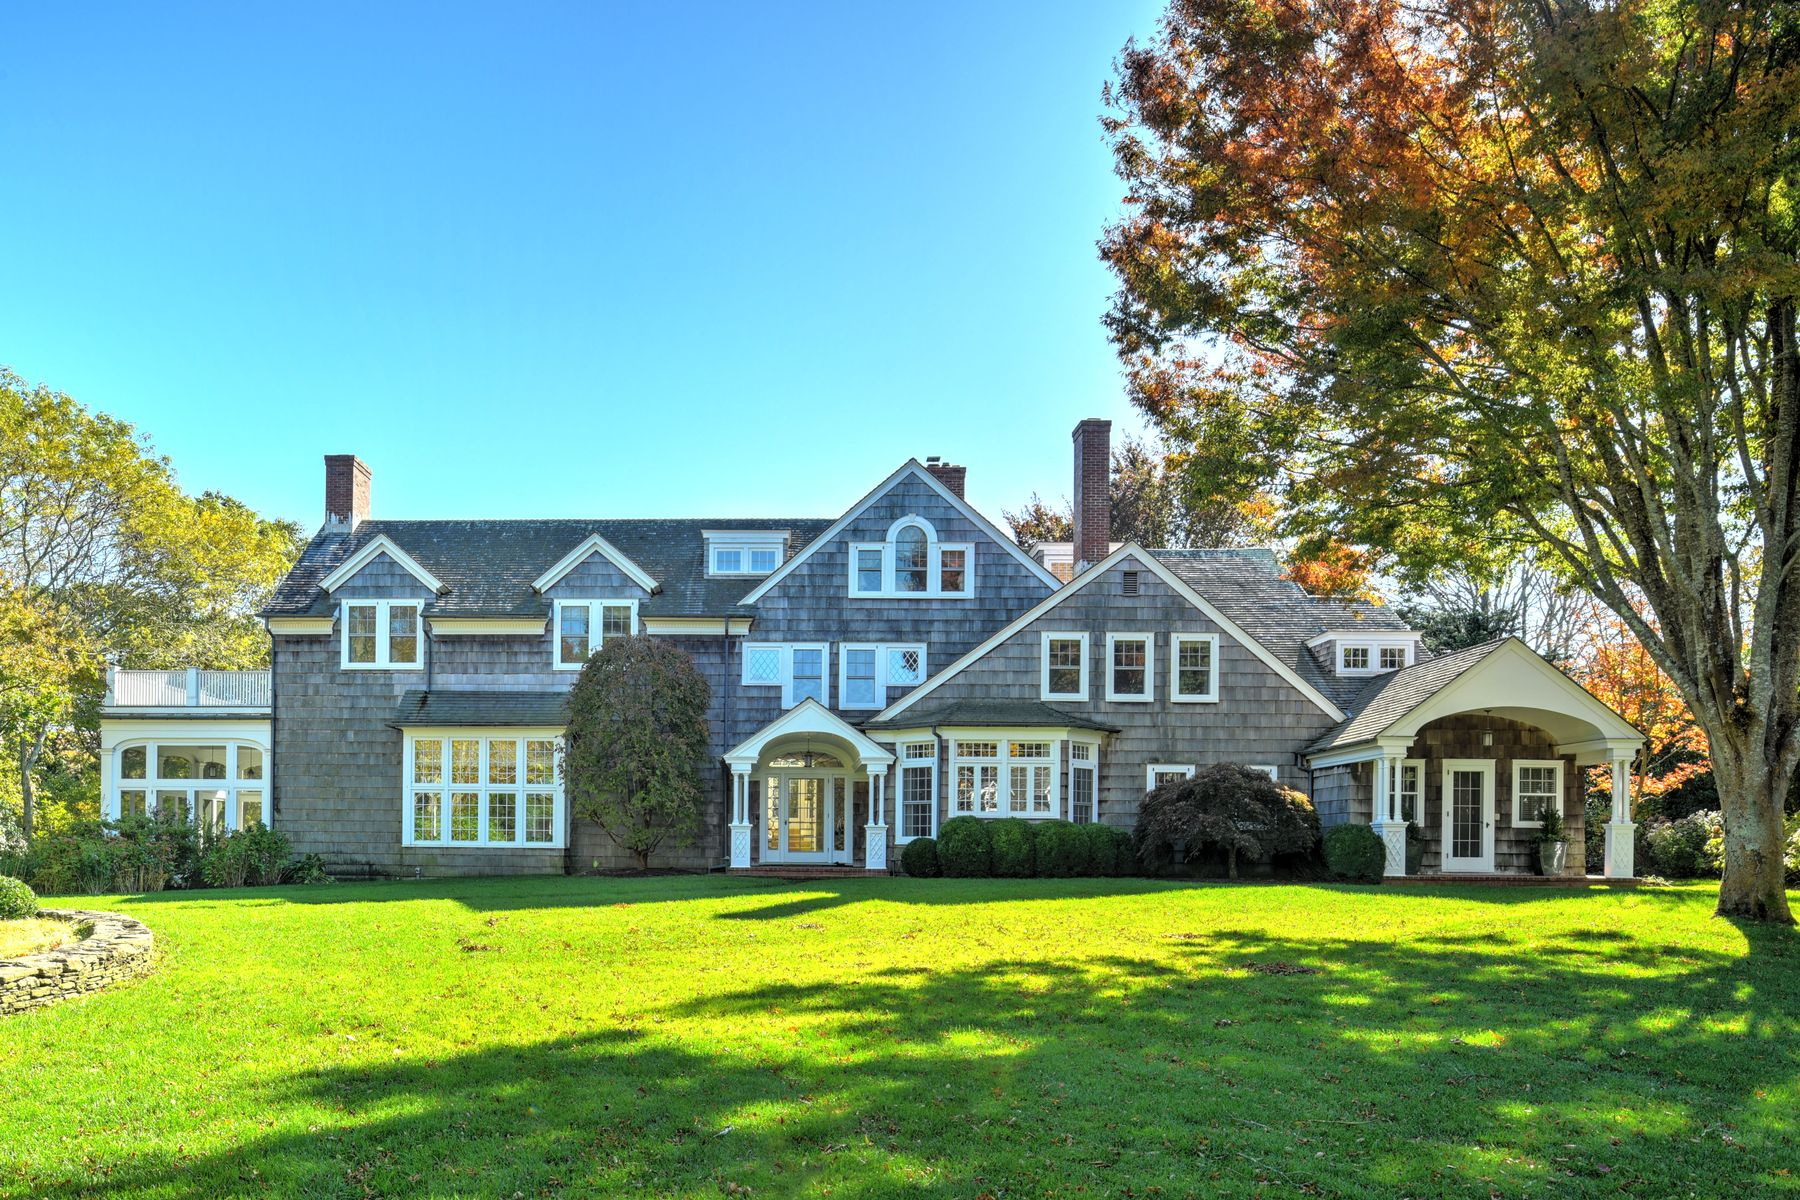 Single Family Homes for Sale at Prestigious Georgica Estate Compound 253 Cove Hollow Road East Hampton, New York 11937 United States